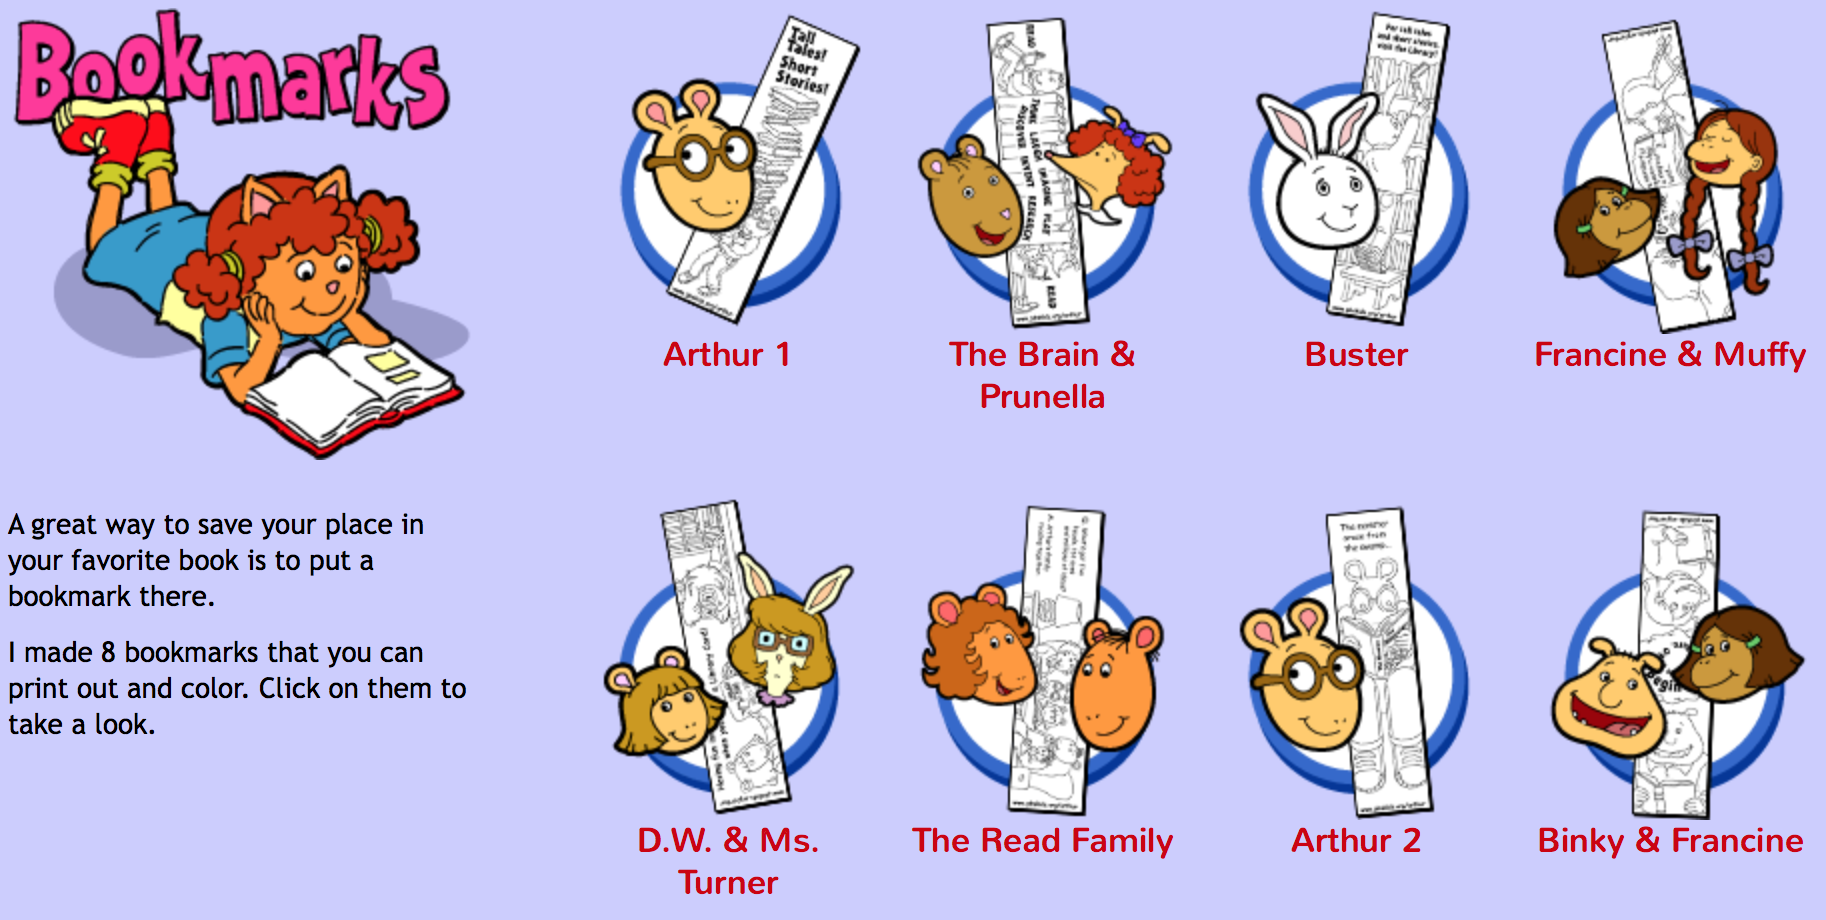 Arthur bookmarks